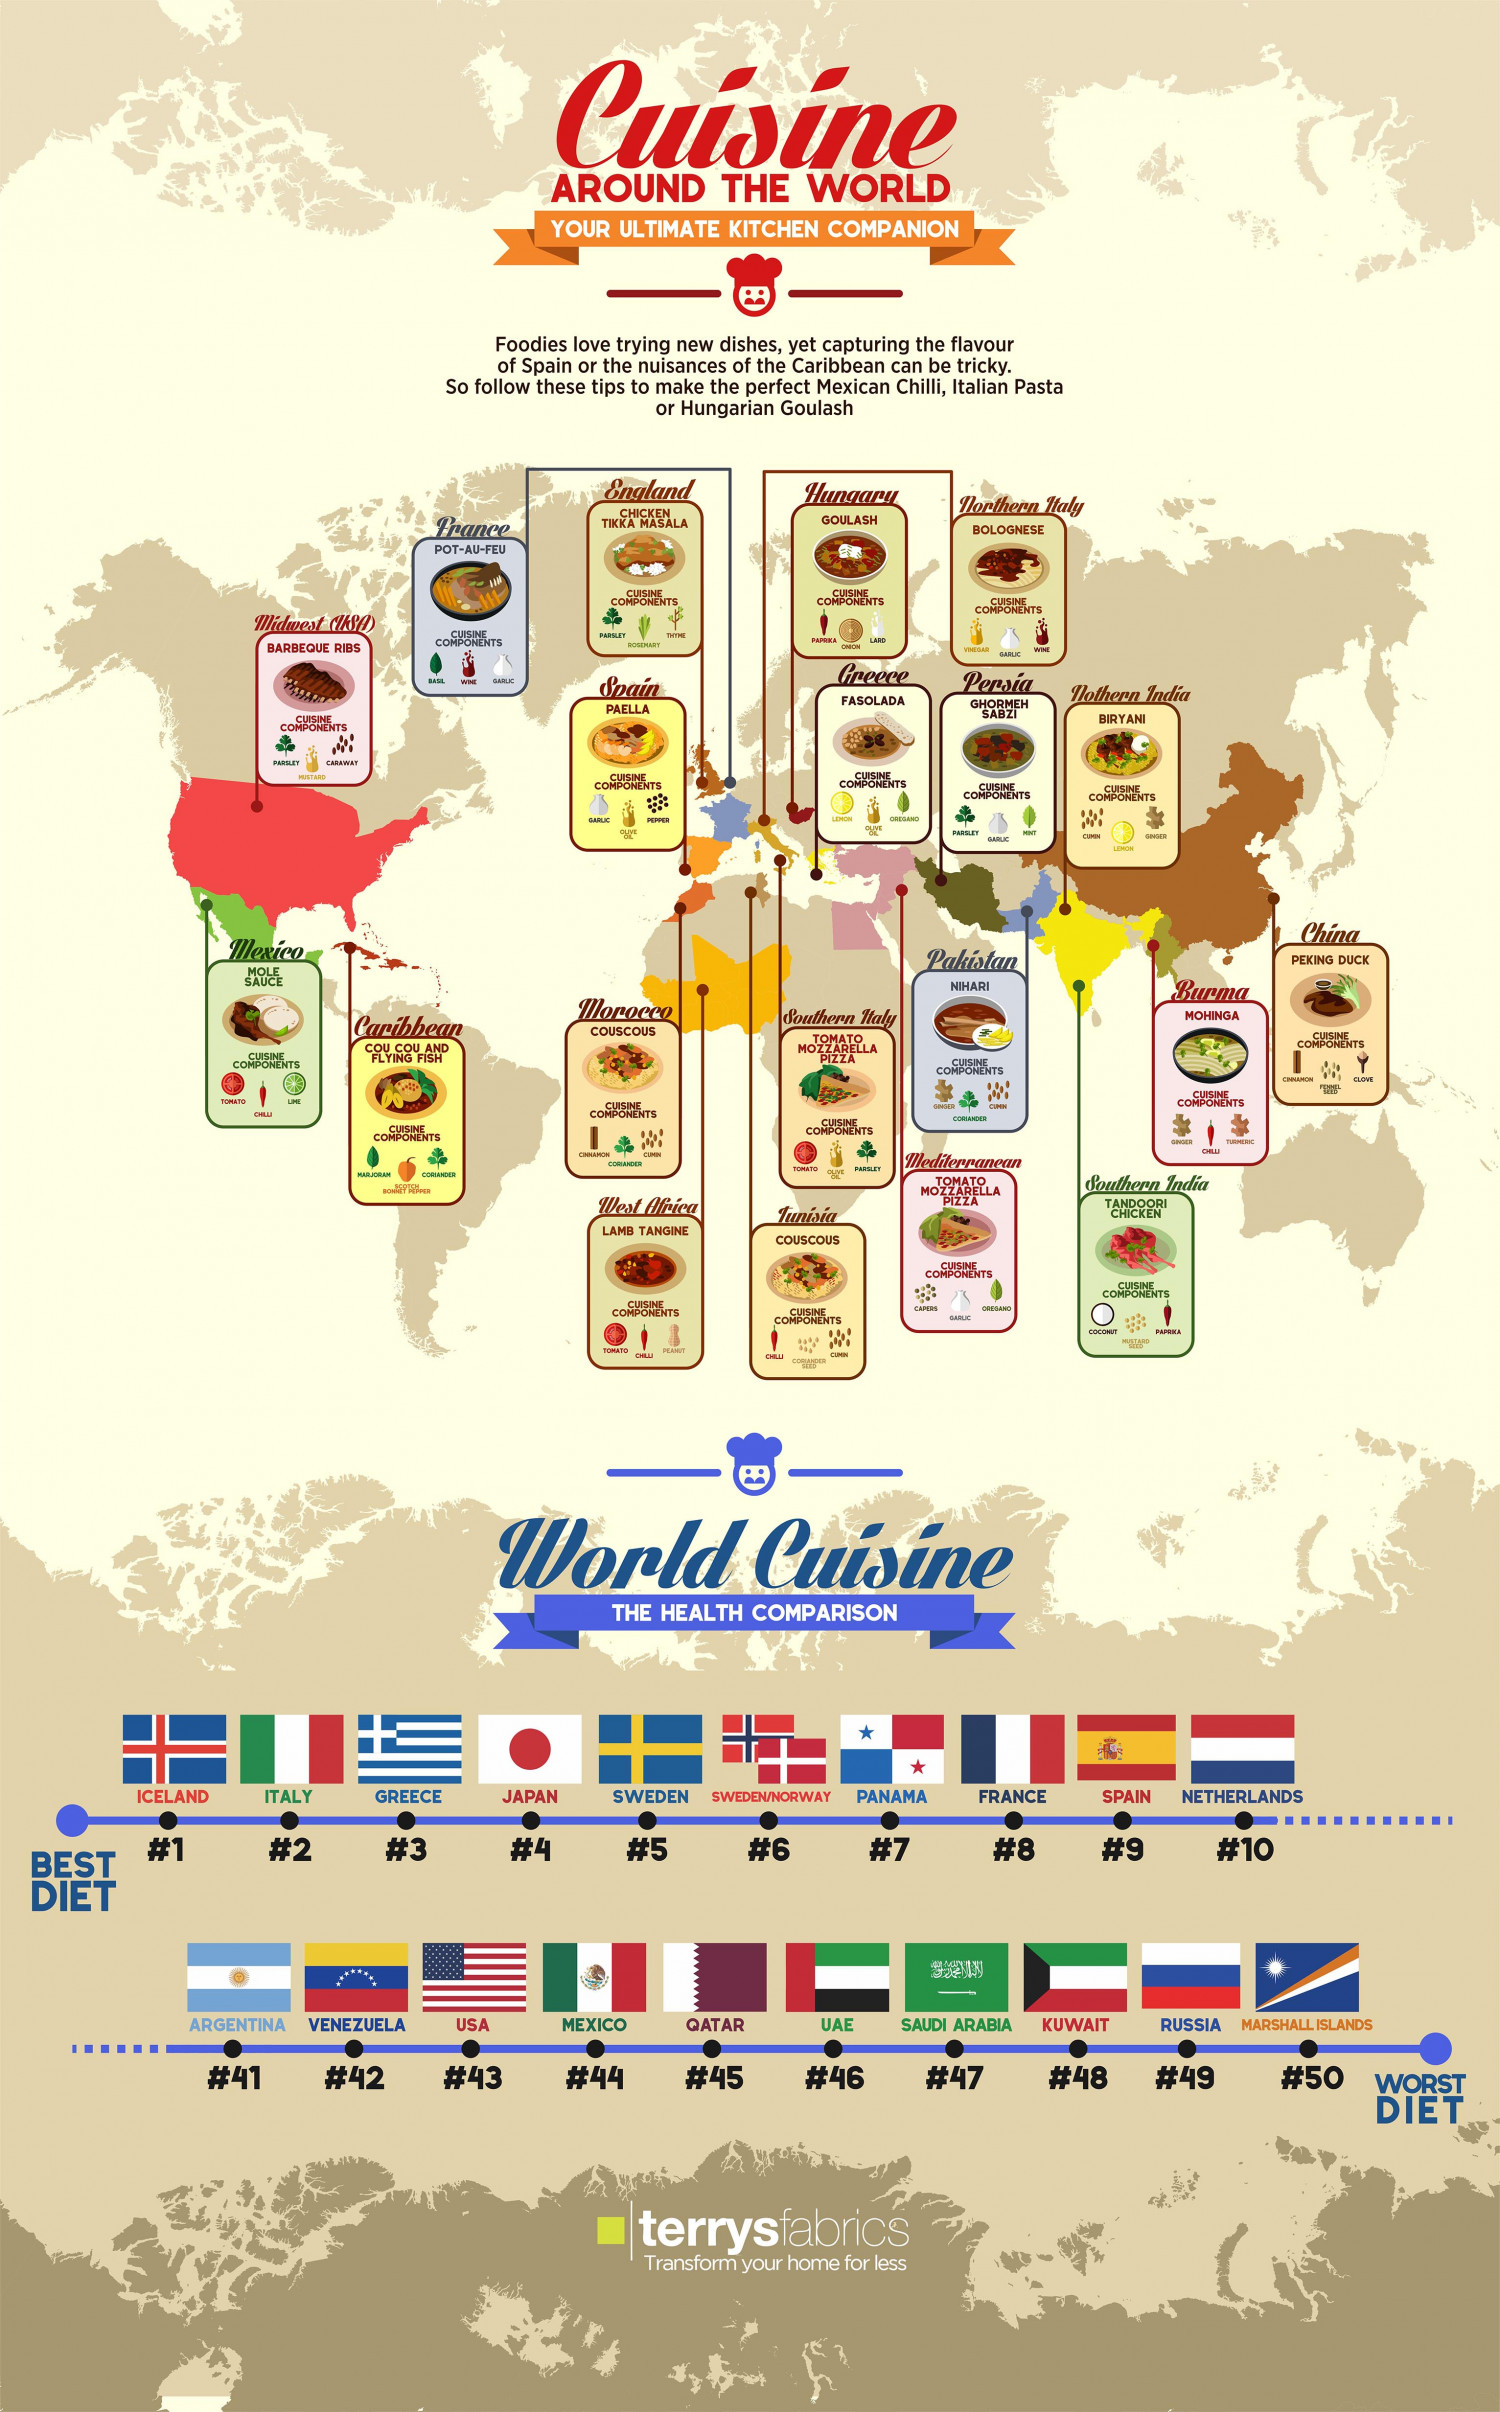 Cuisine Around the World Infographic